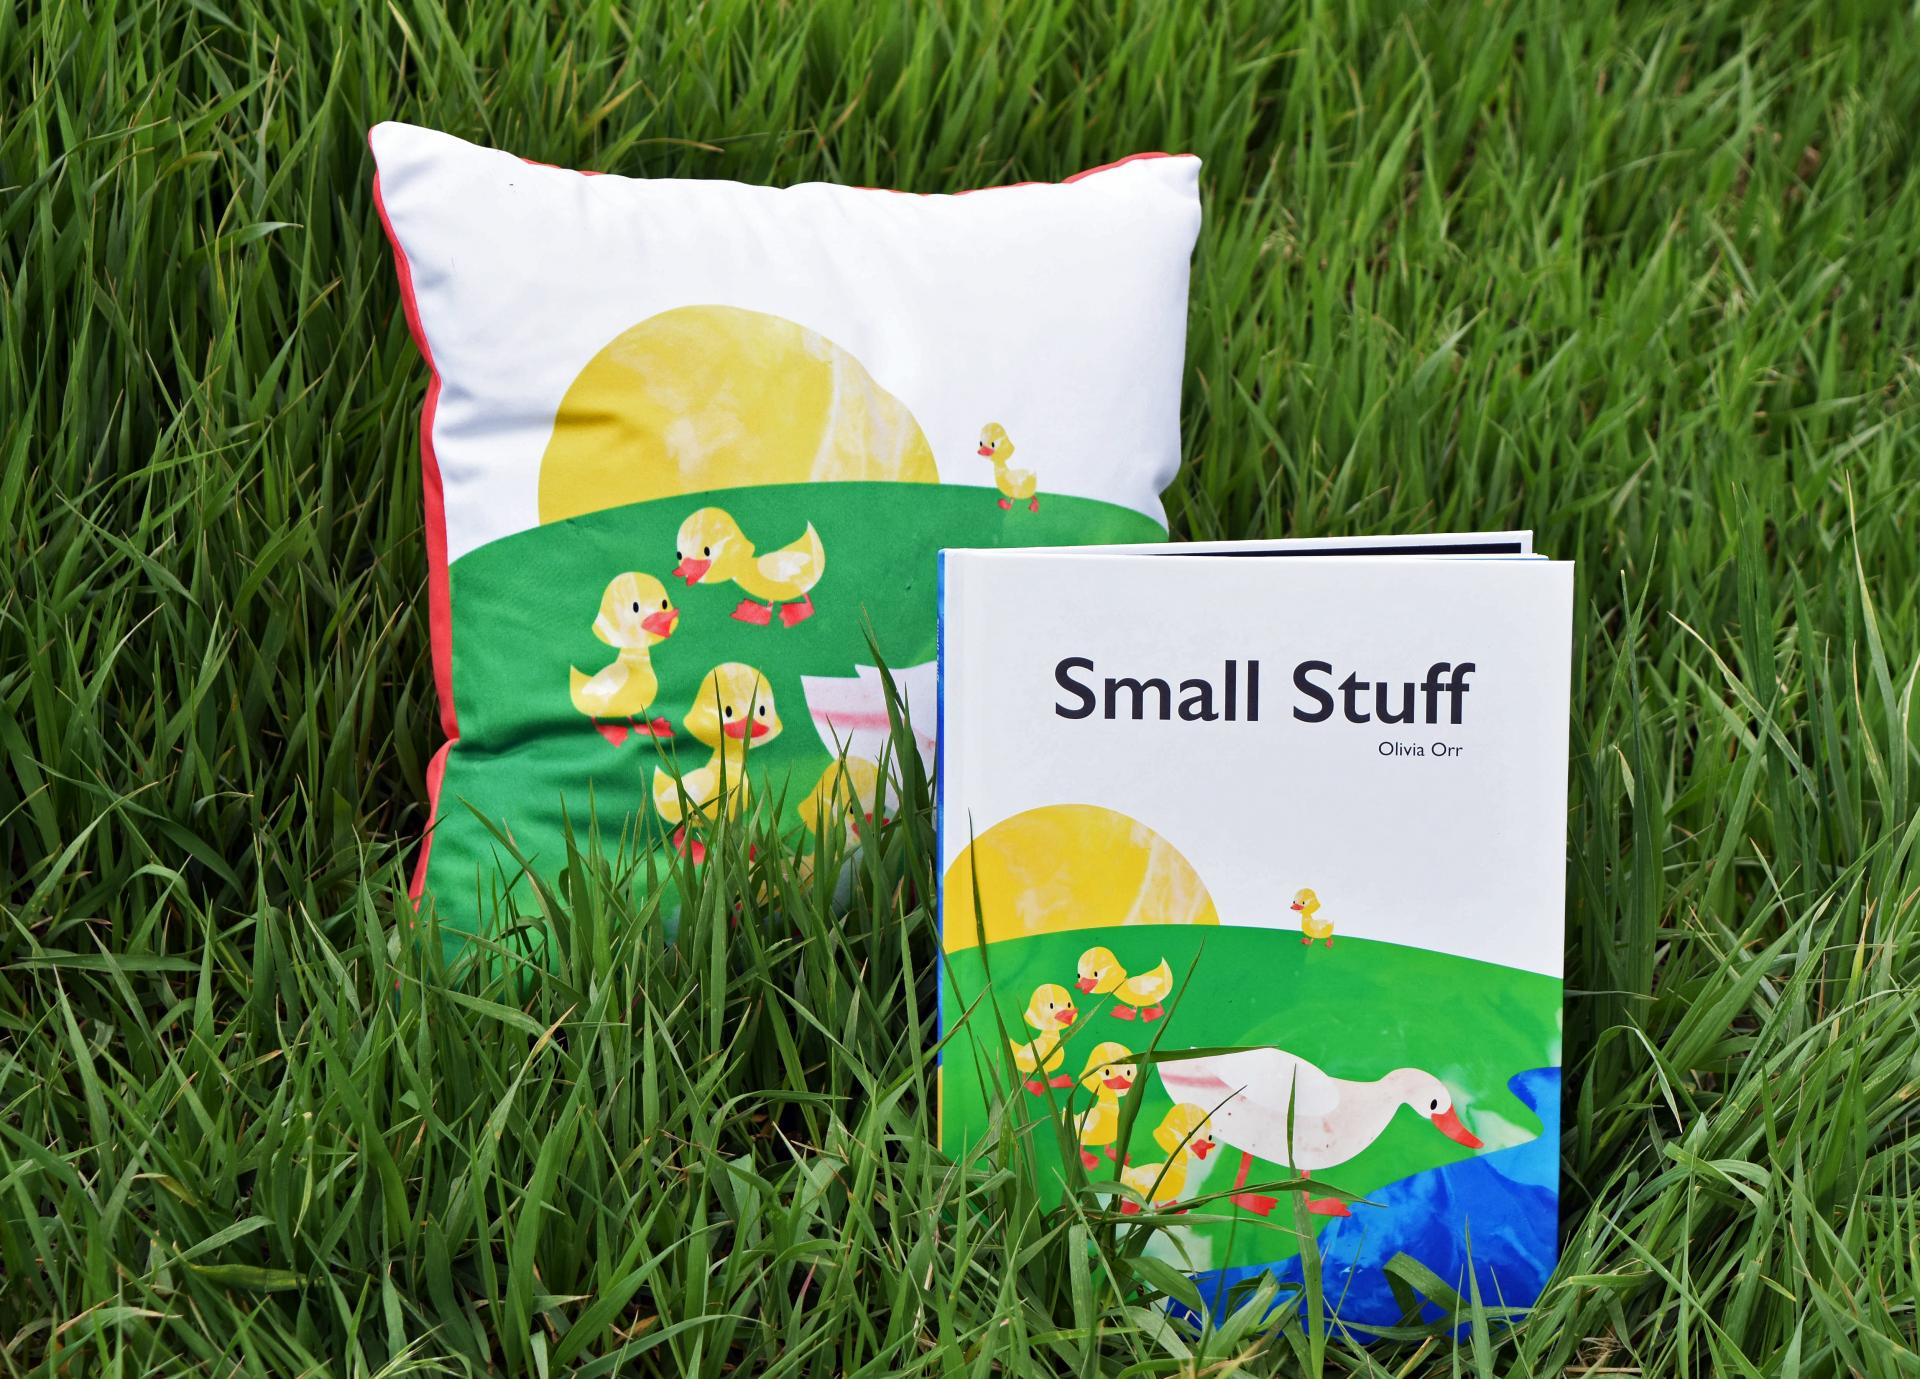 An illustrated pillow and book cover with the title 'Small Stuff' in a grassy field